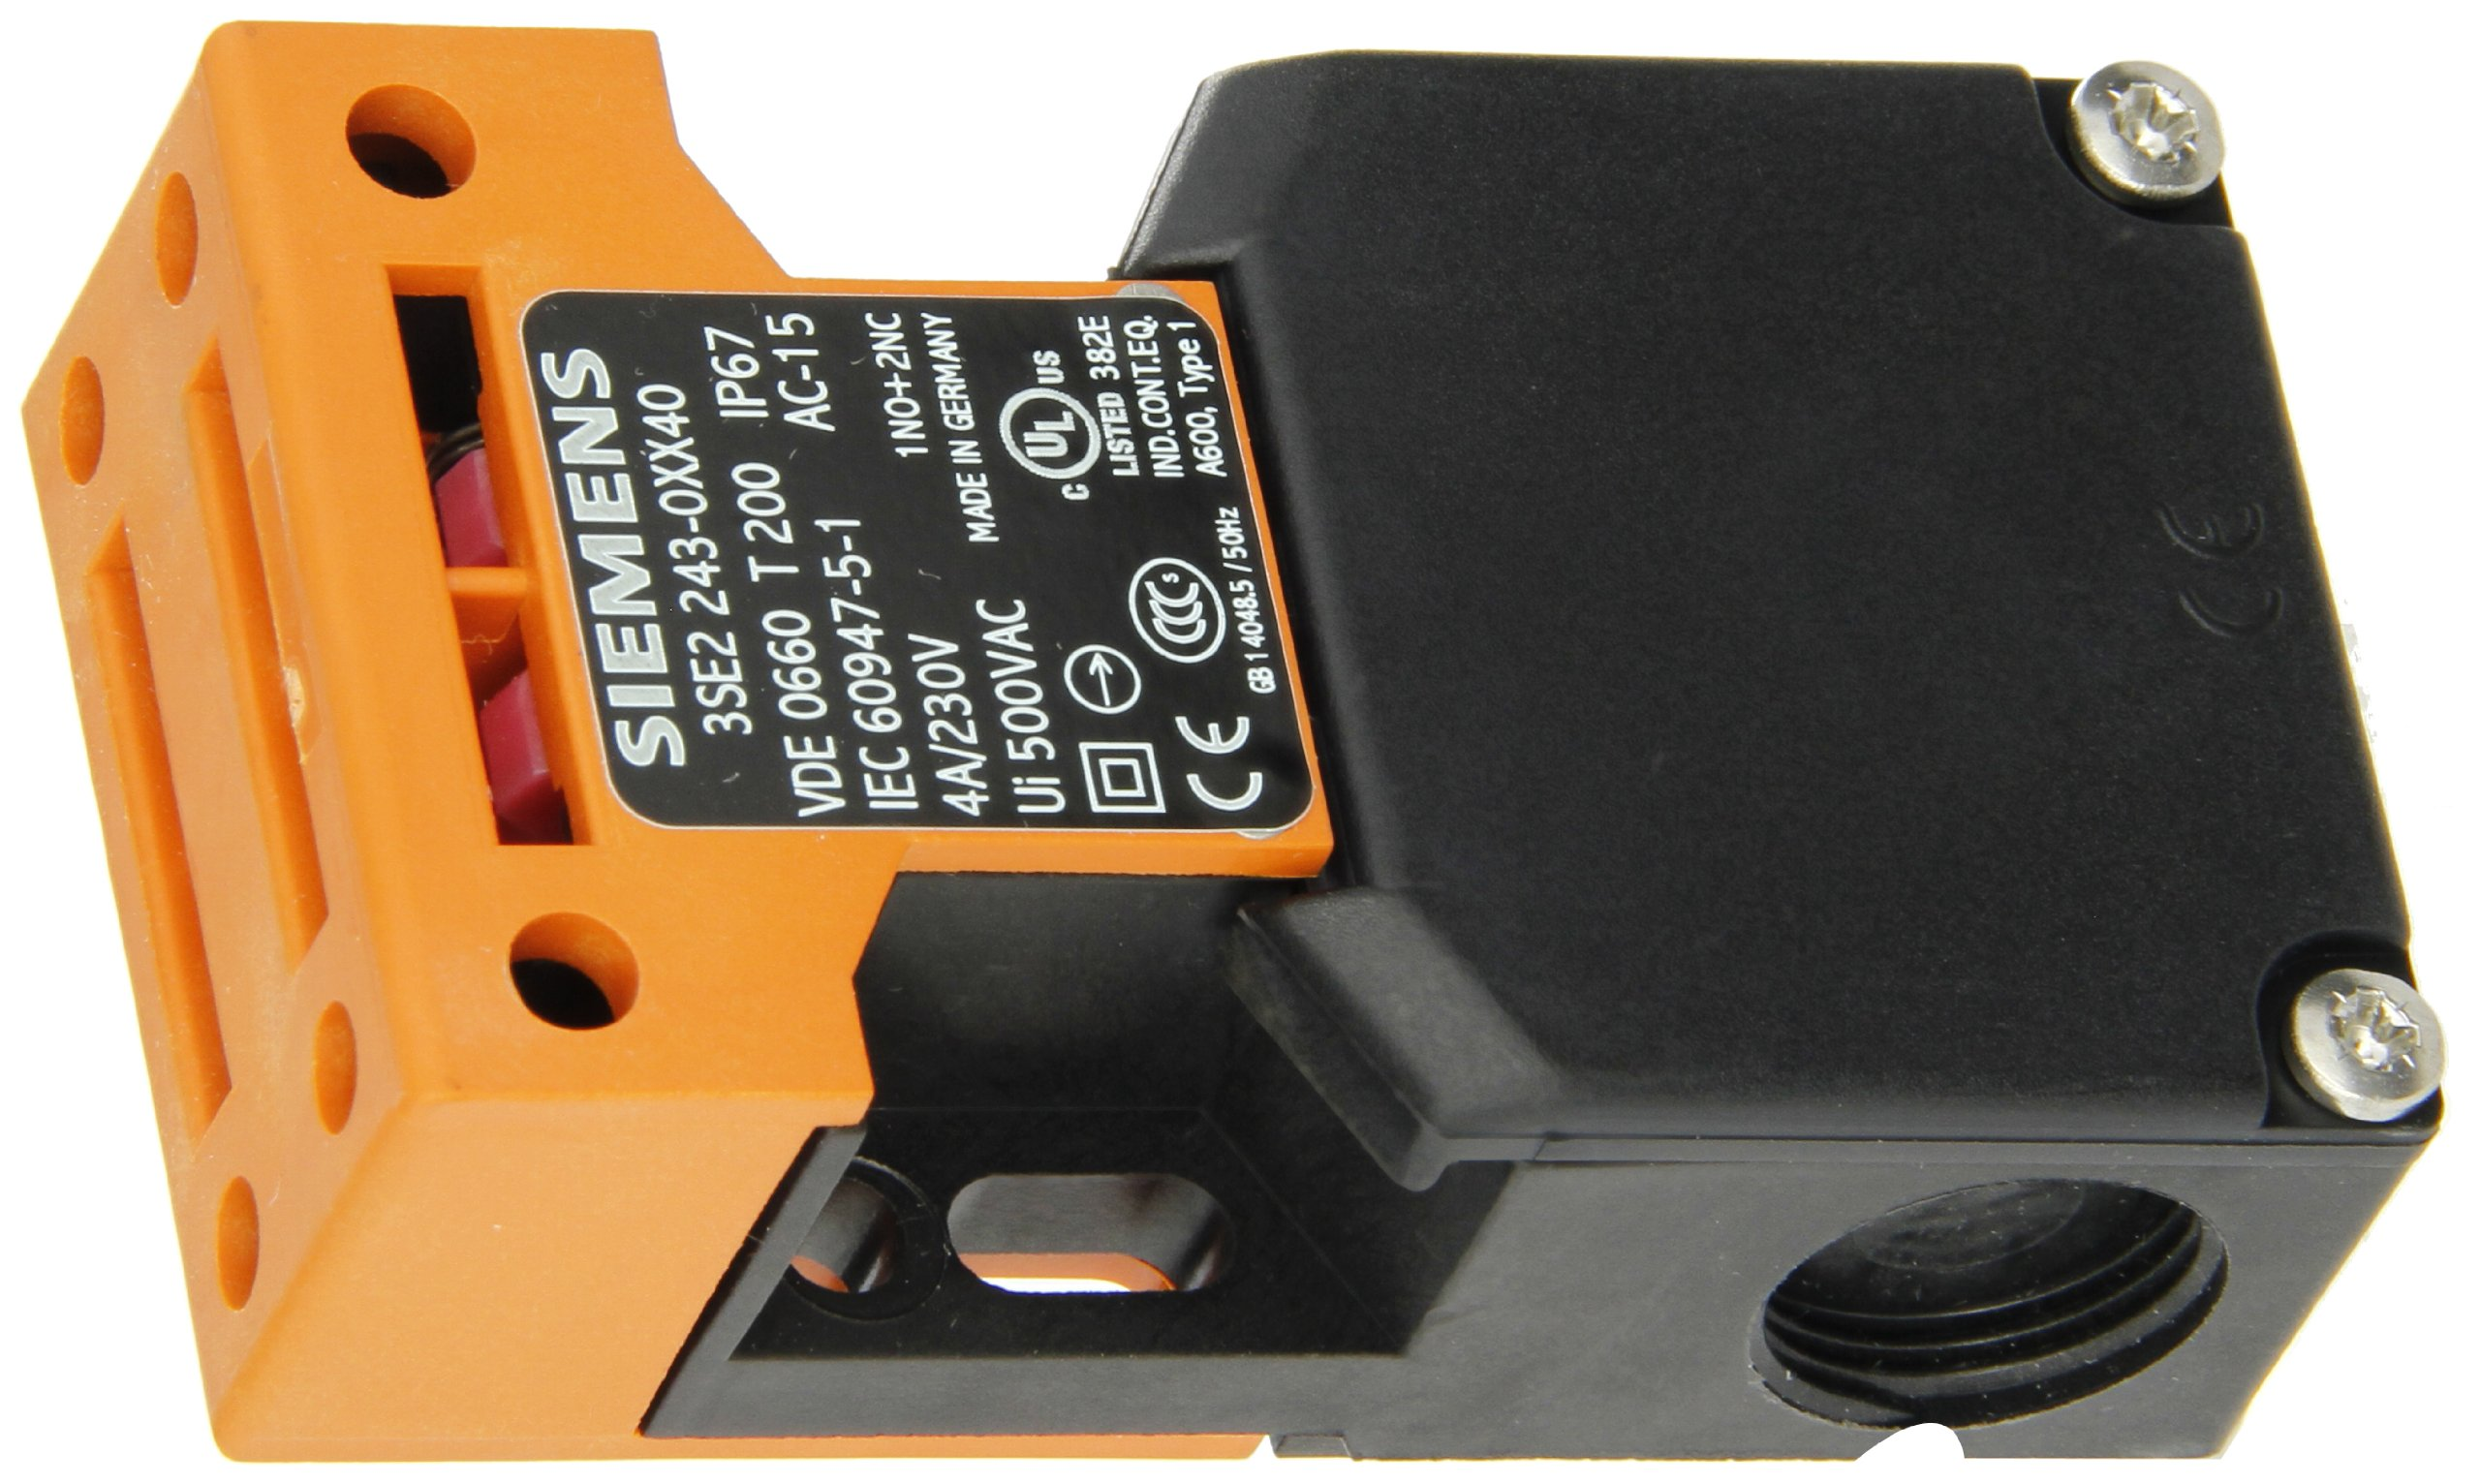 Siemens 3SE2 243-0XX40 Interlock Switch, Molded Plastic Enclosure, Top and Side Entry, M20 x 1.5 Connecting Thread, 5N Extraction Force, 3 Slow Action Contacts, 52mm Enclosure Width